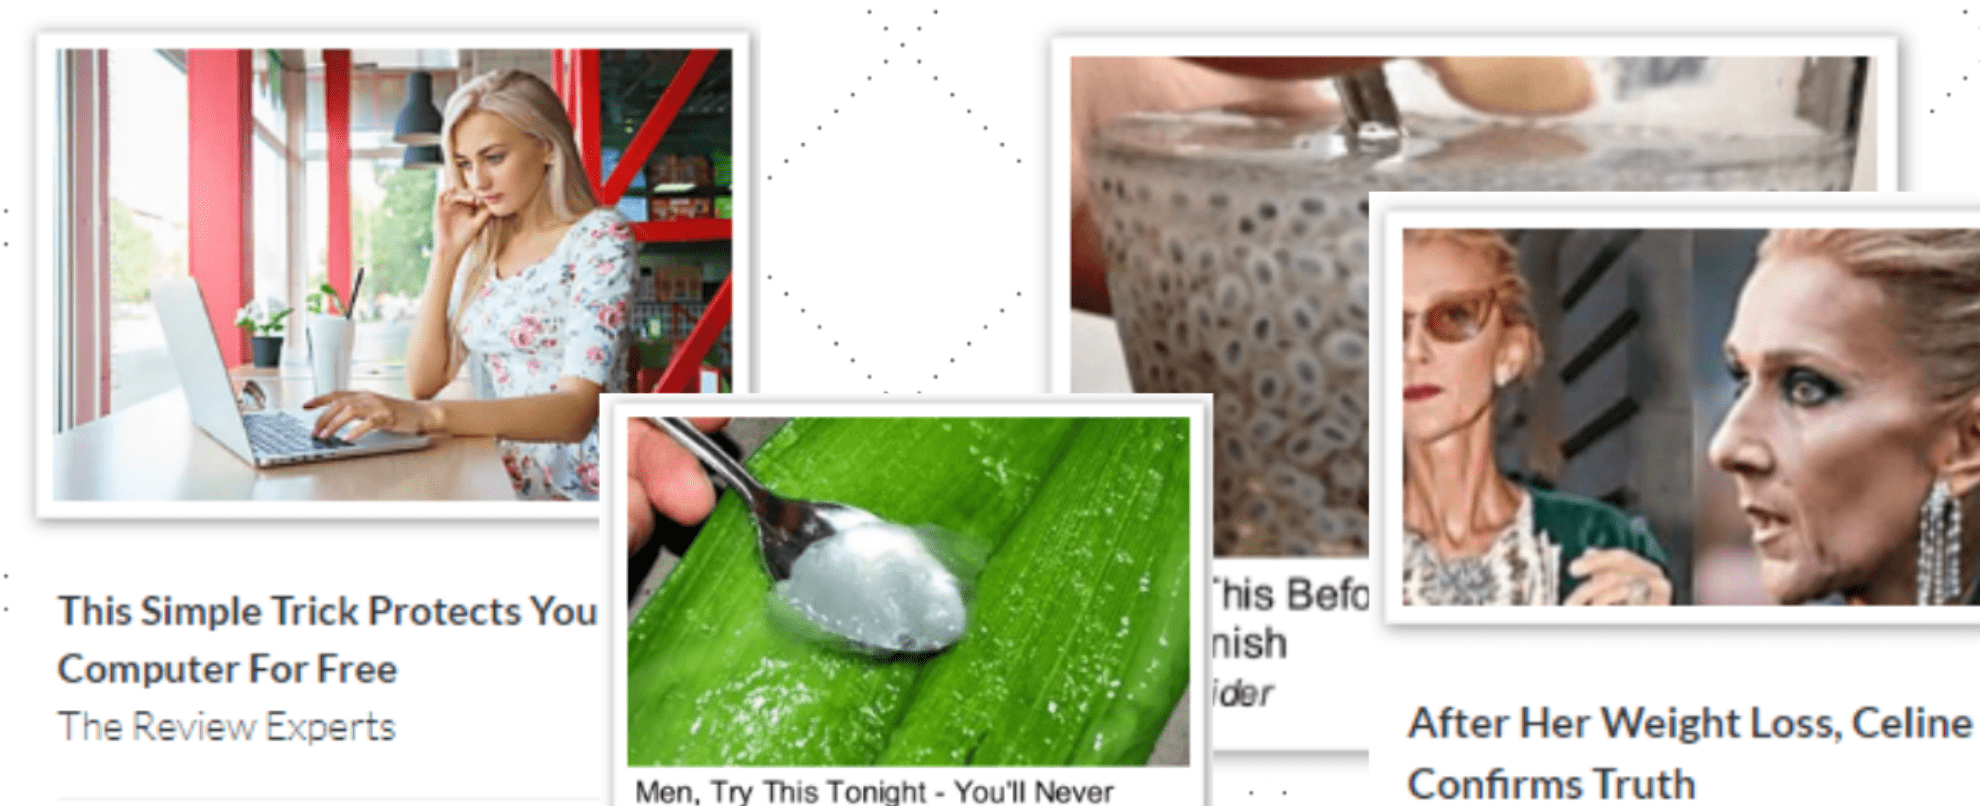 examples-of-native-ads-tractics-png.5061